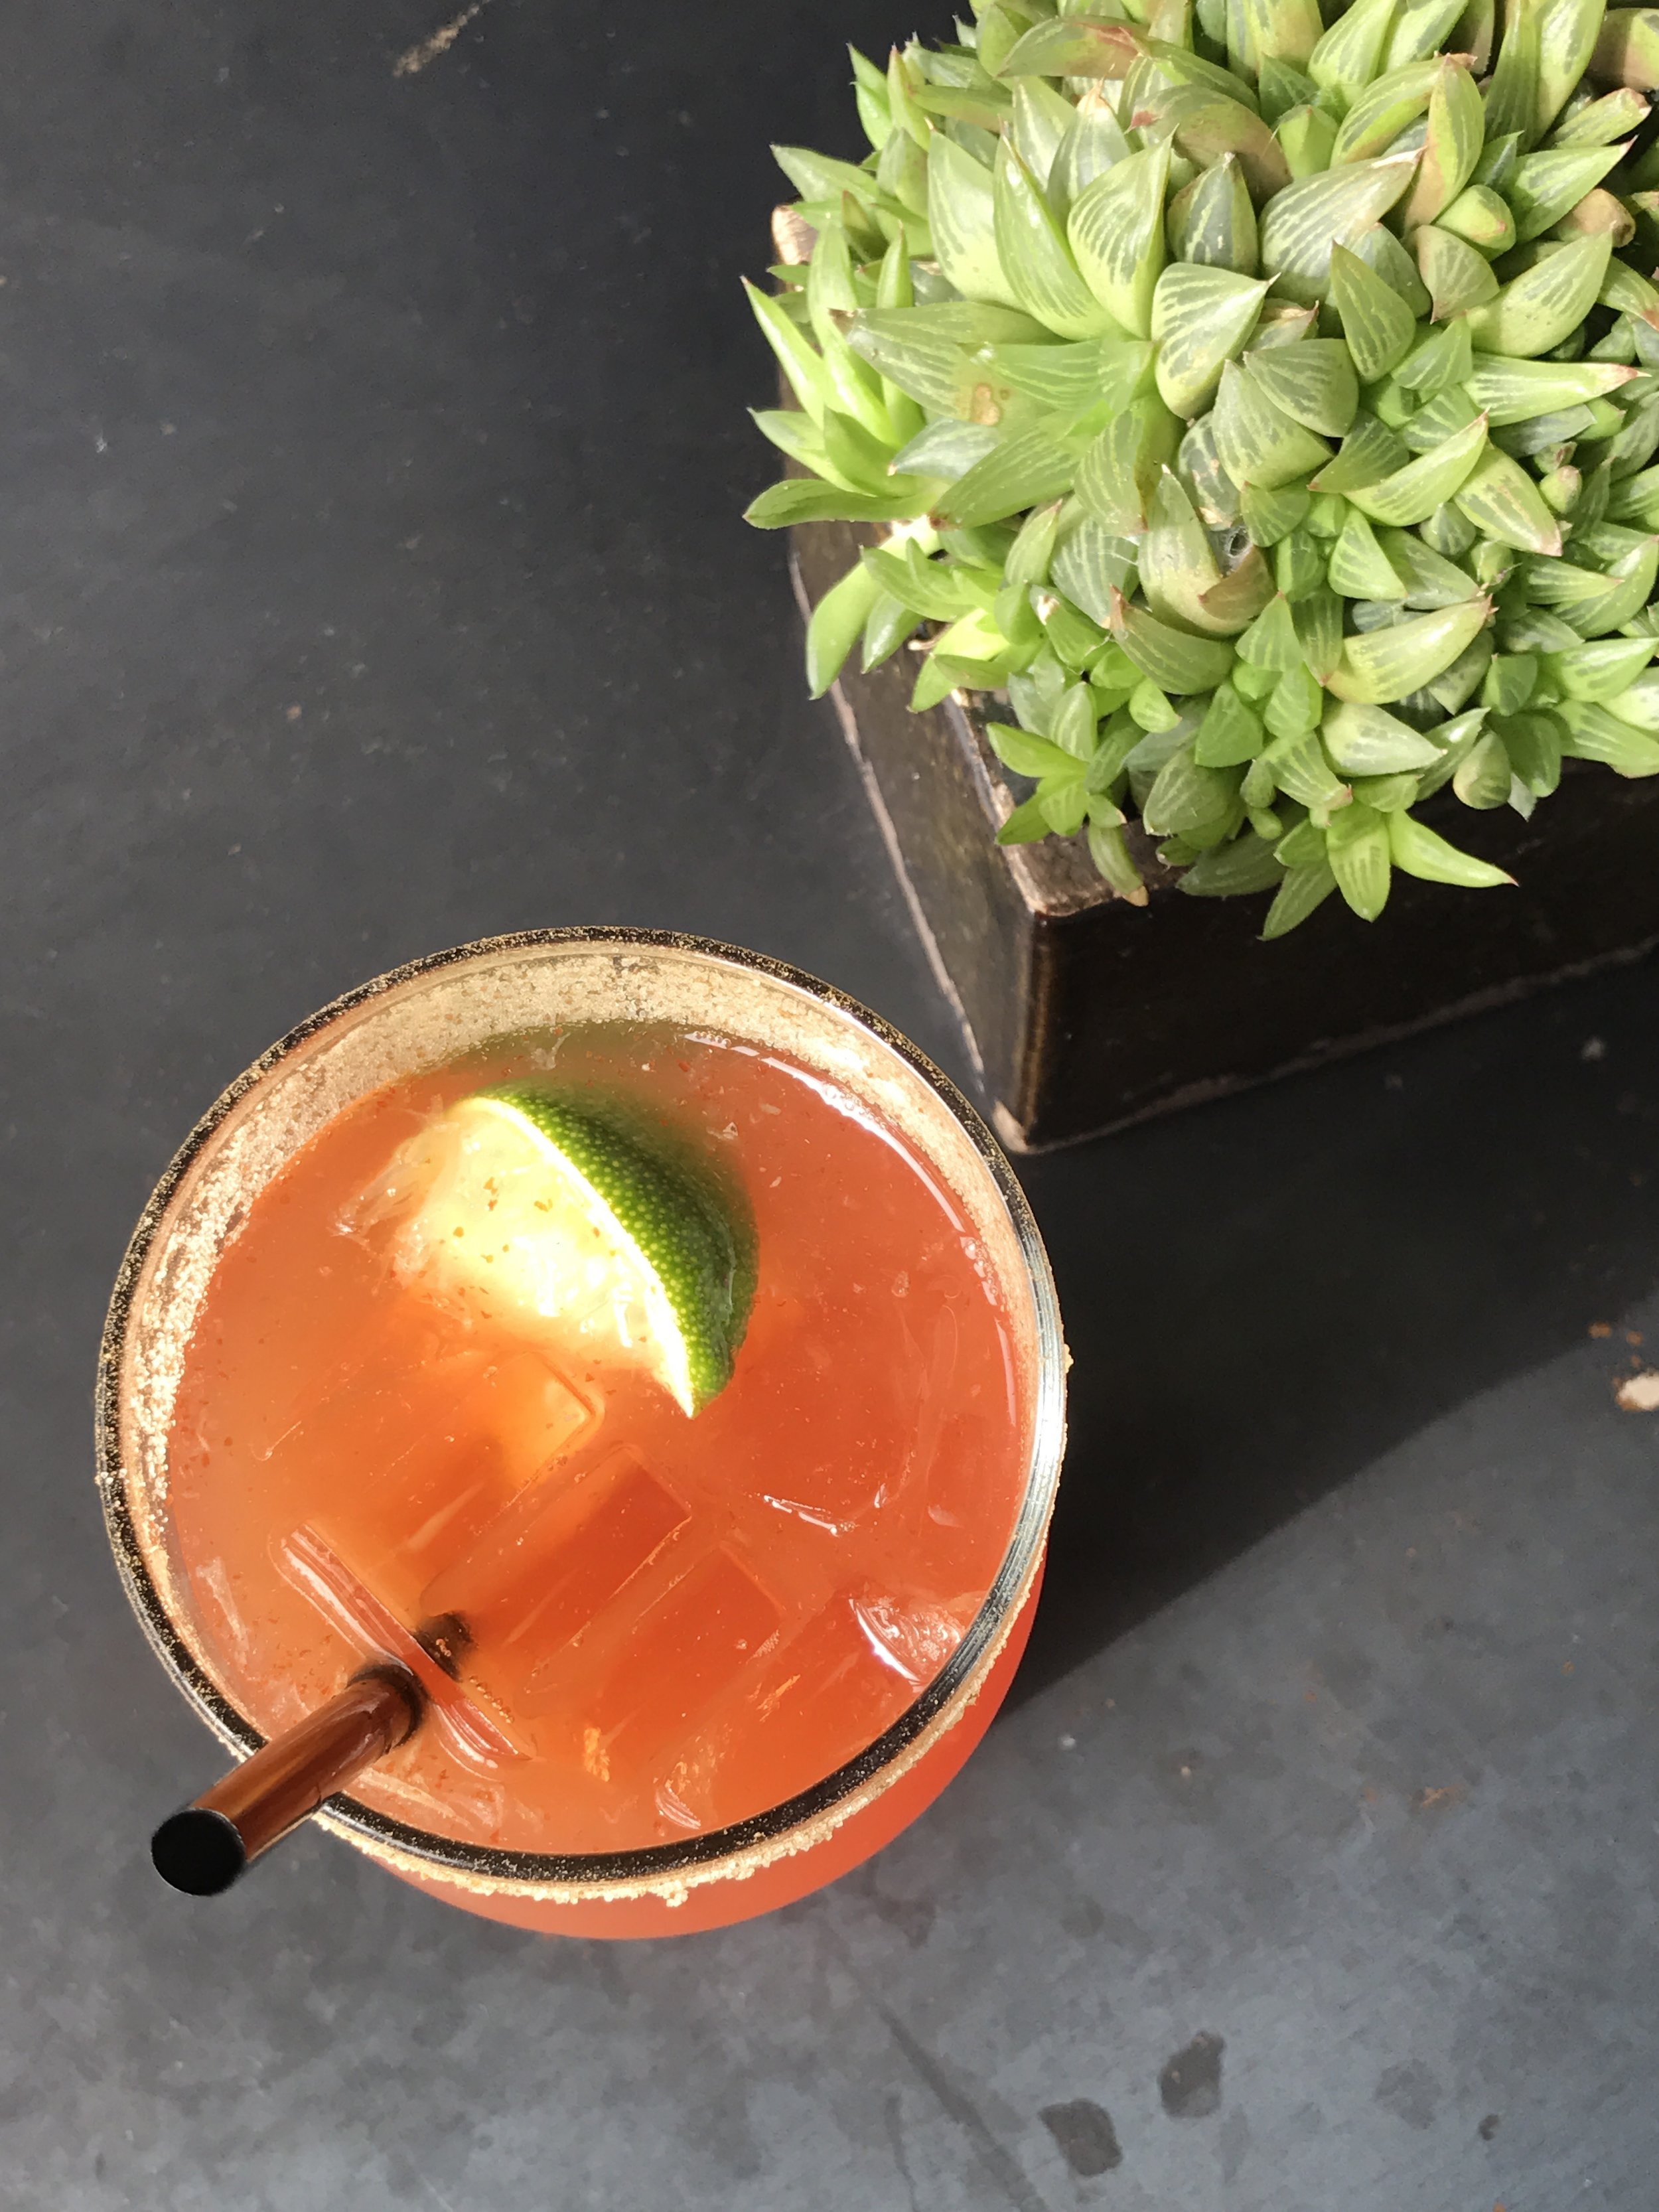 Bloody Beer - spiced tomato spiked lager, ice, celery salt rim